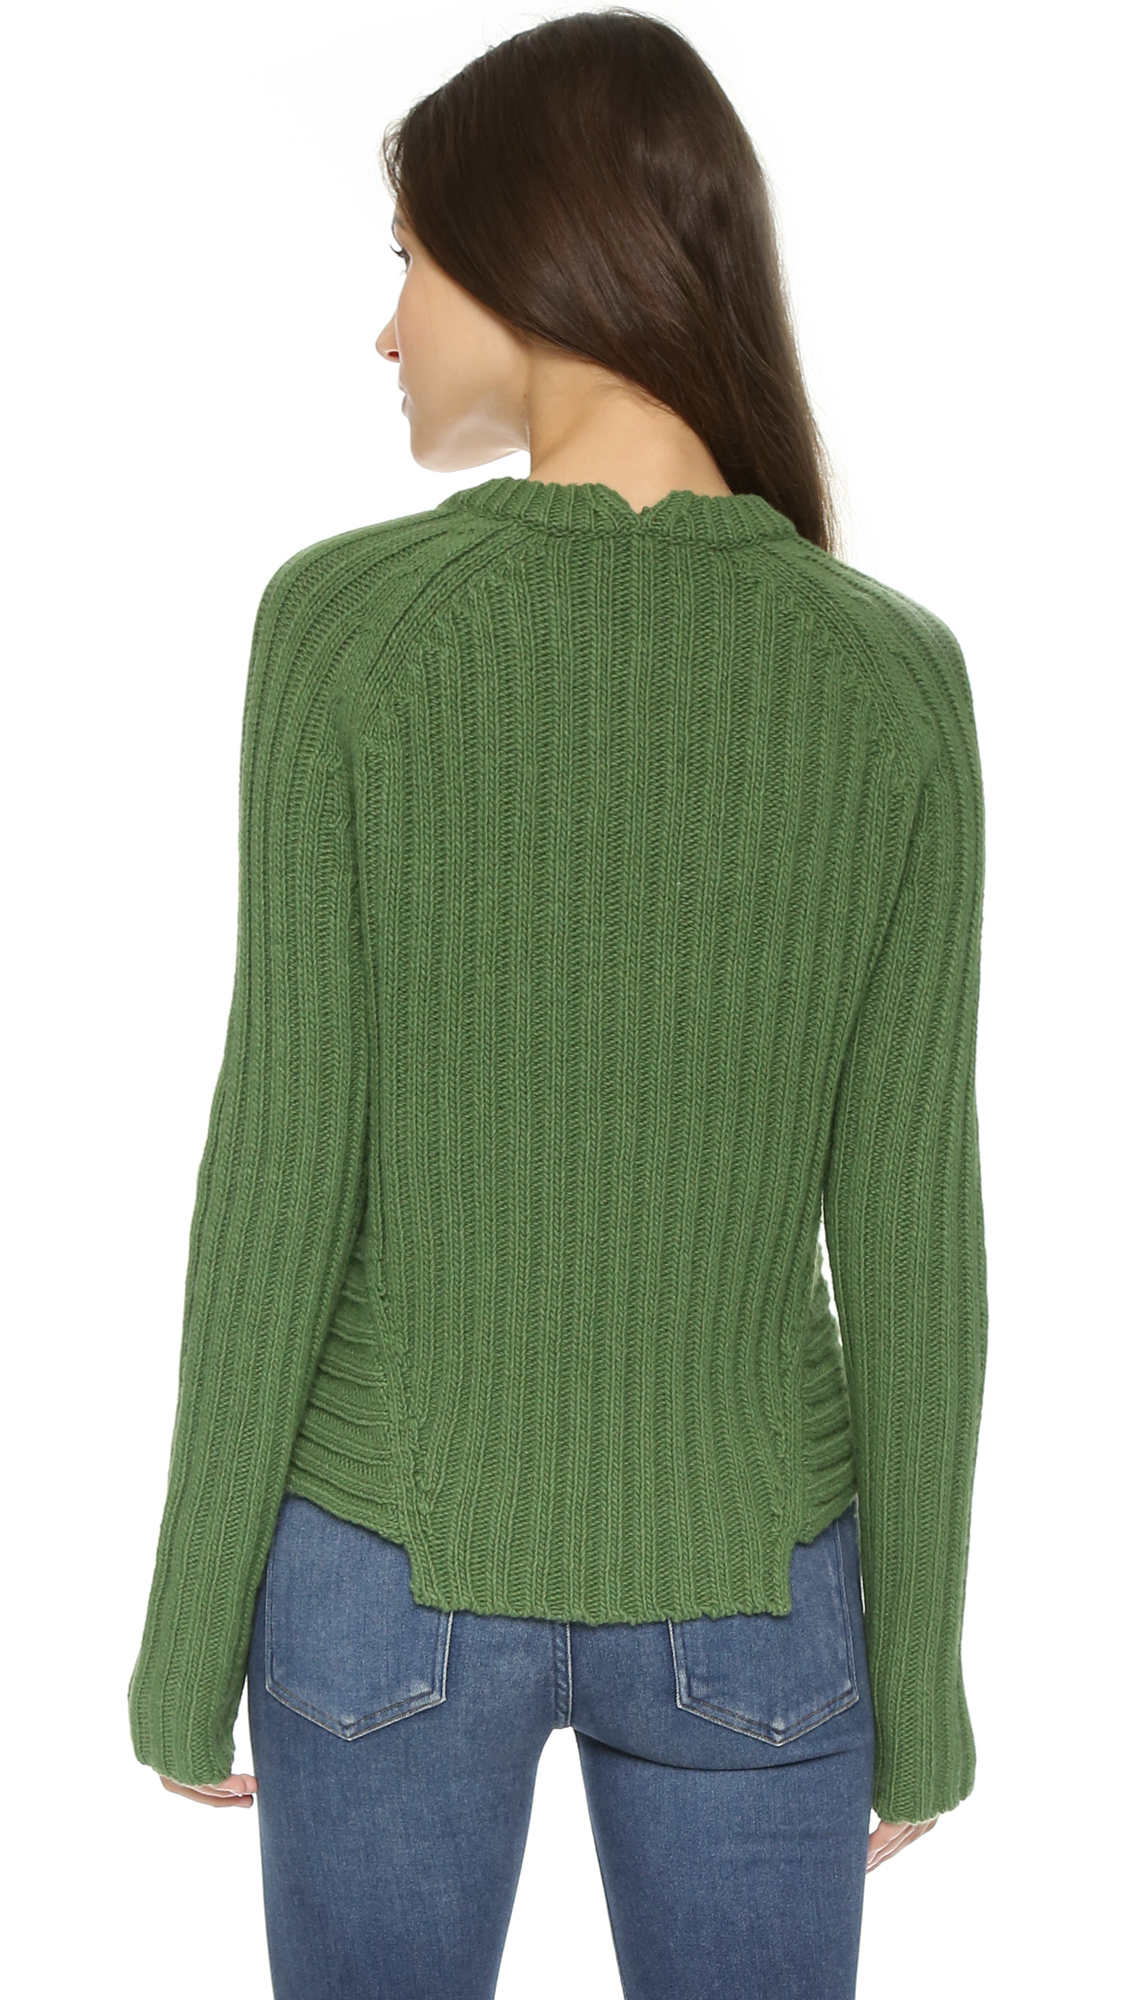 Marc by marc jacobs Ribbed Sweater - Dark Ocean in Green | Lyst